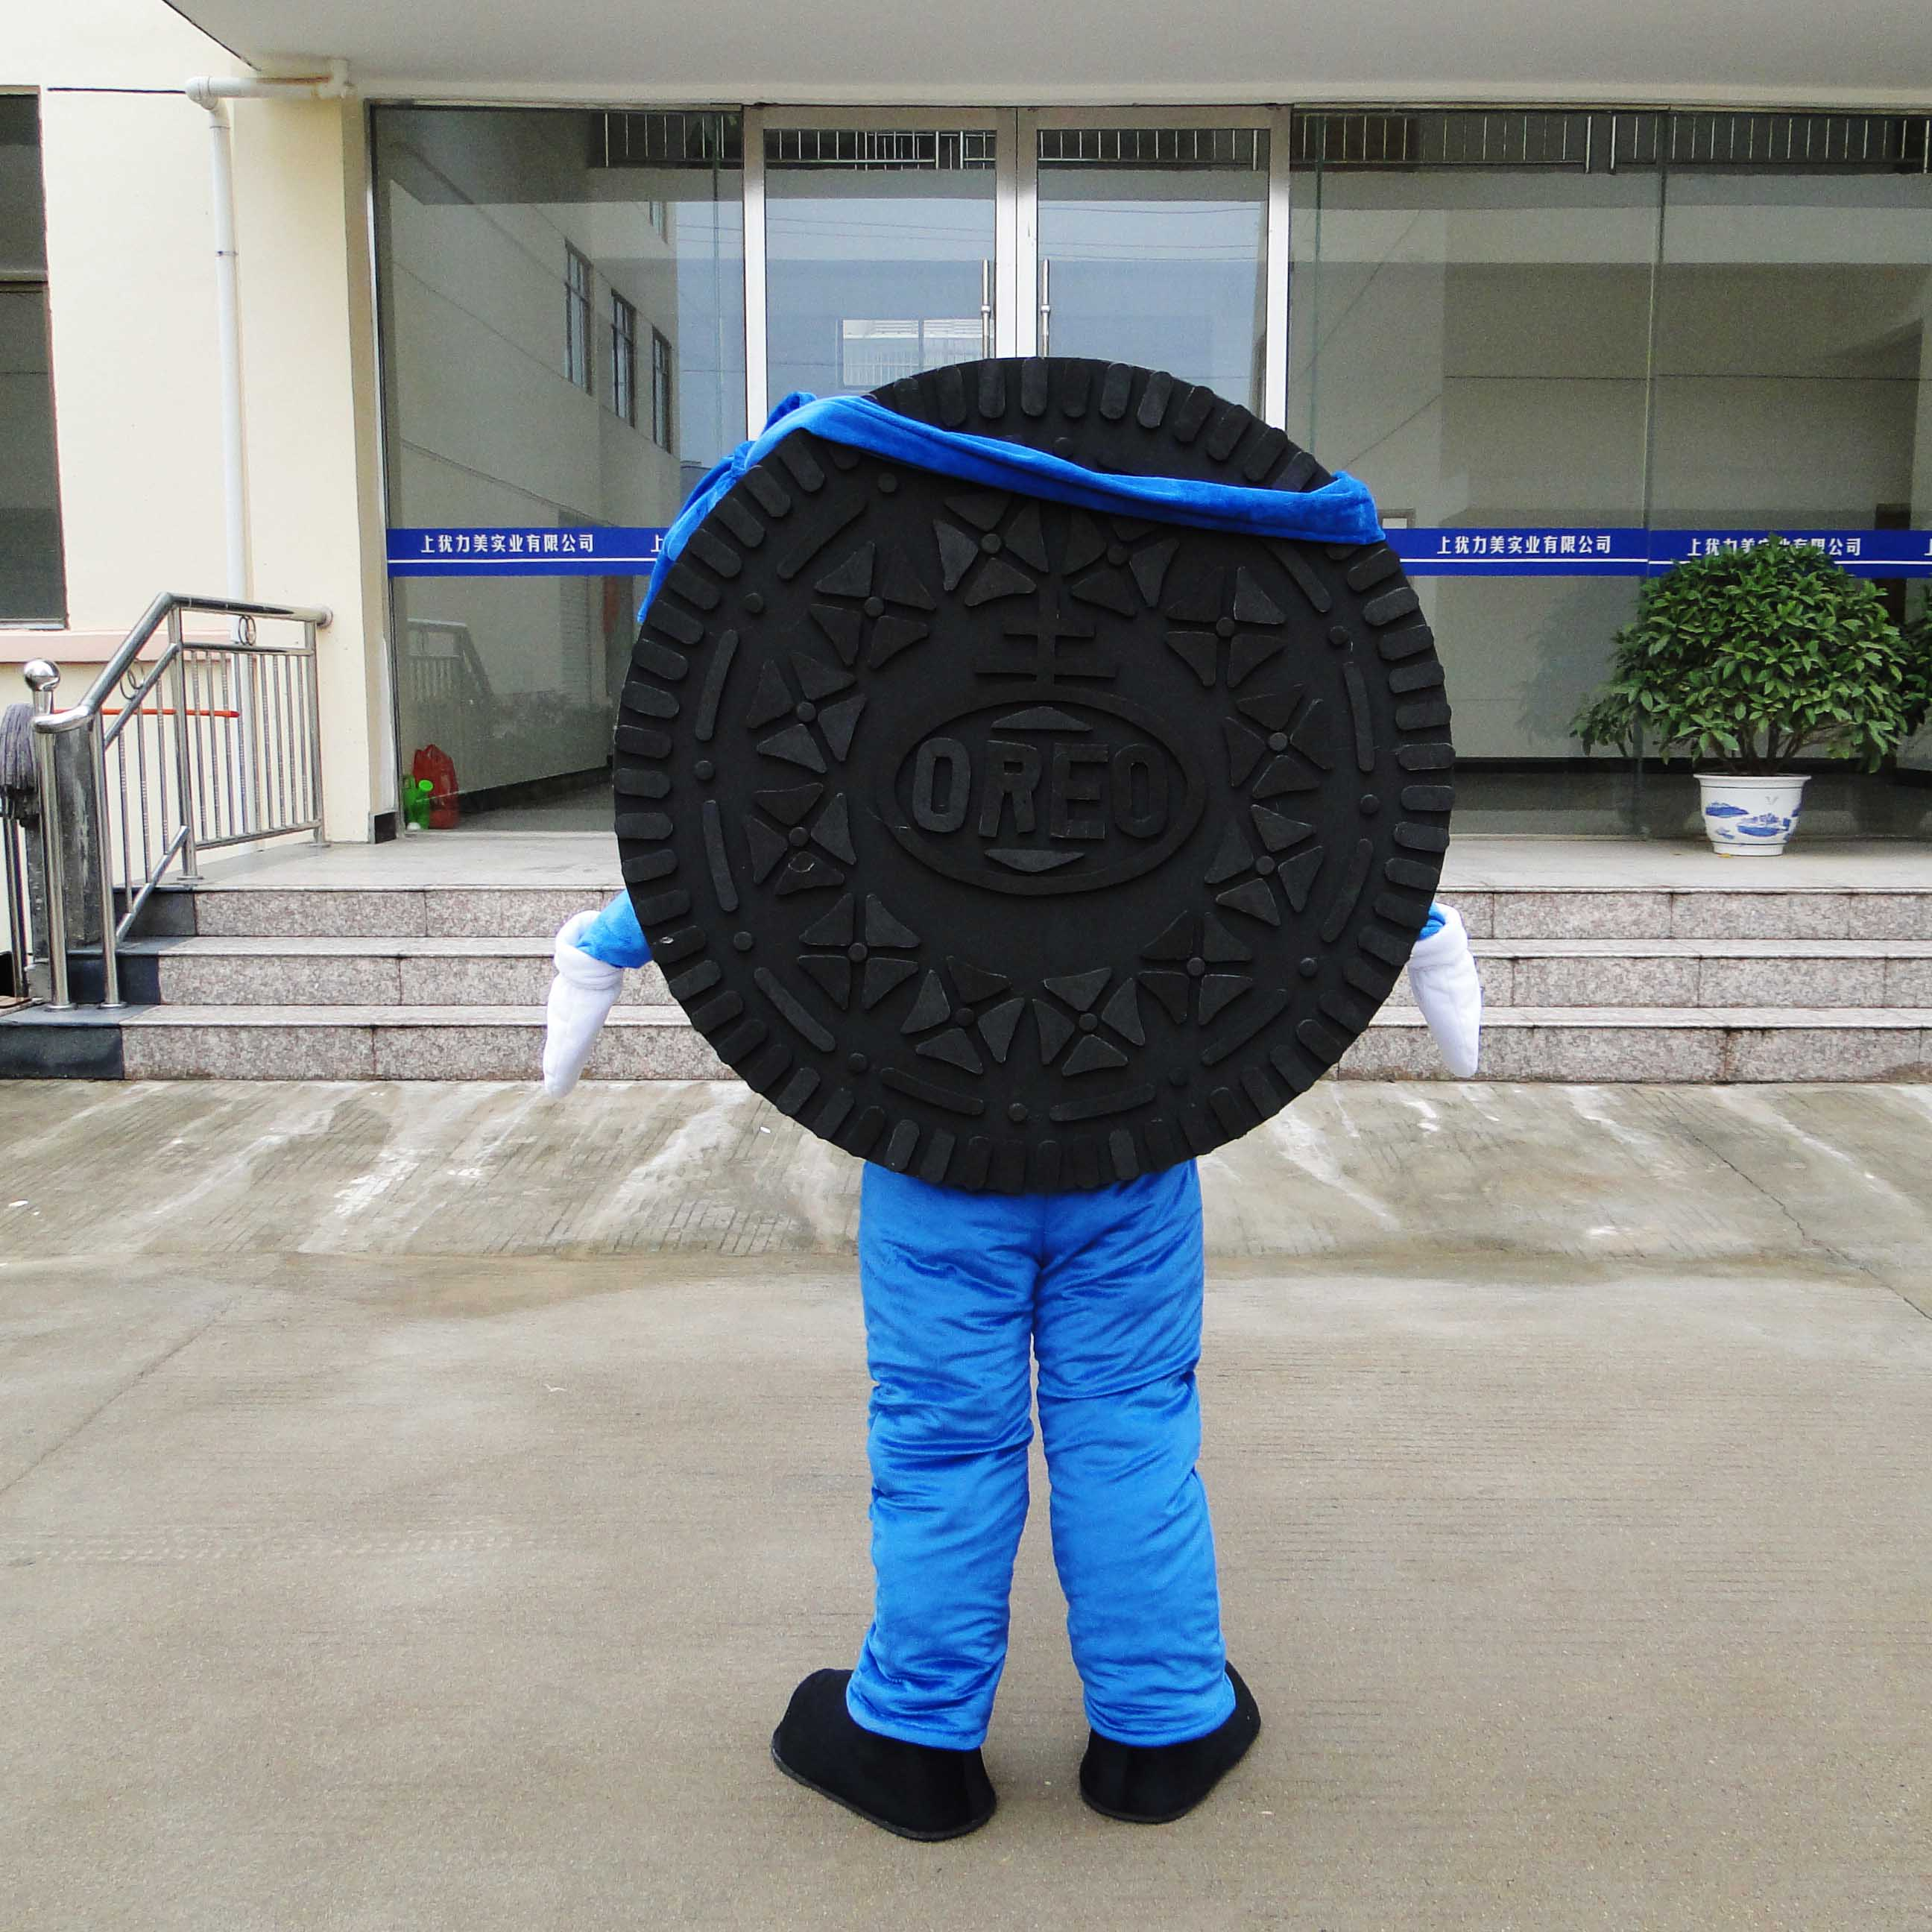 Cartoon Doll Clothing Doll Dress Costumes Product Doll Corporate Mascot Oreo Cookies Mascot Costume